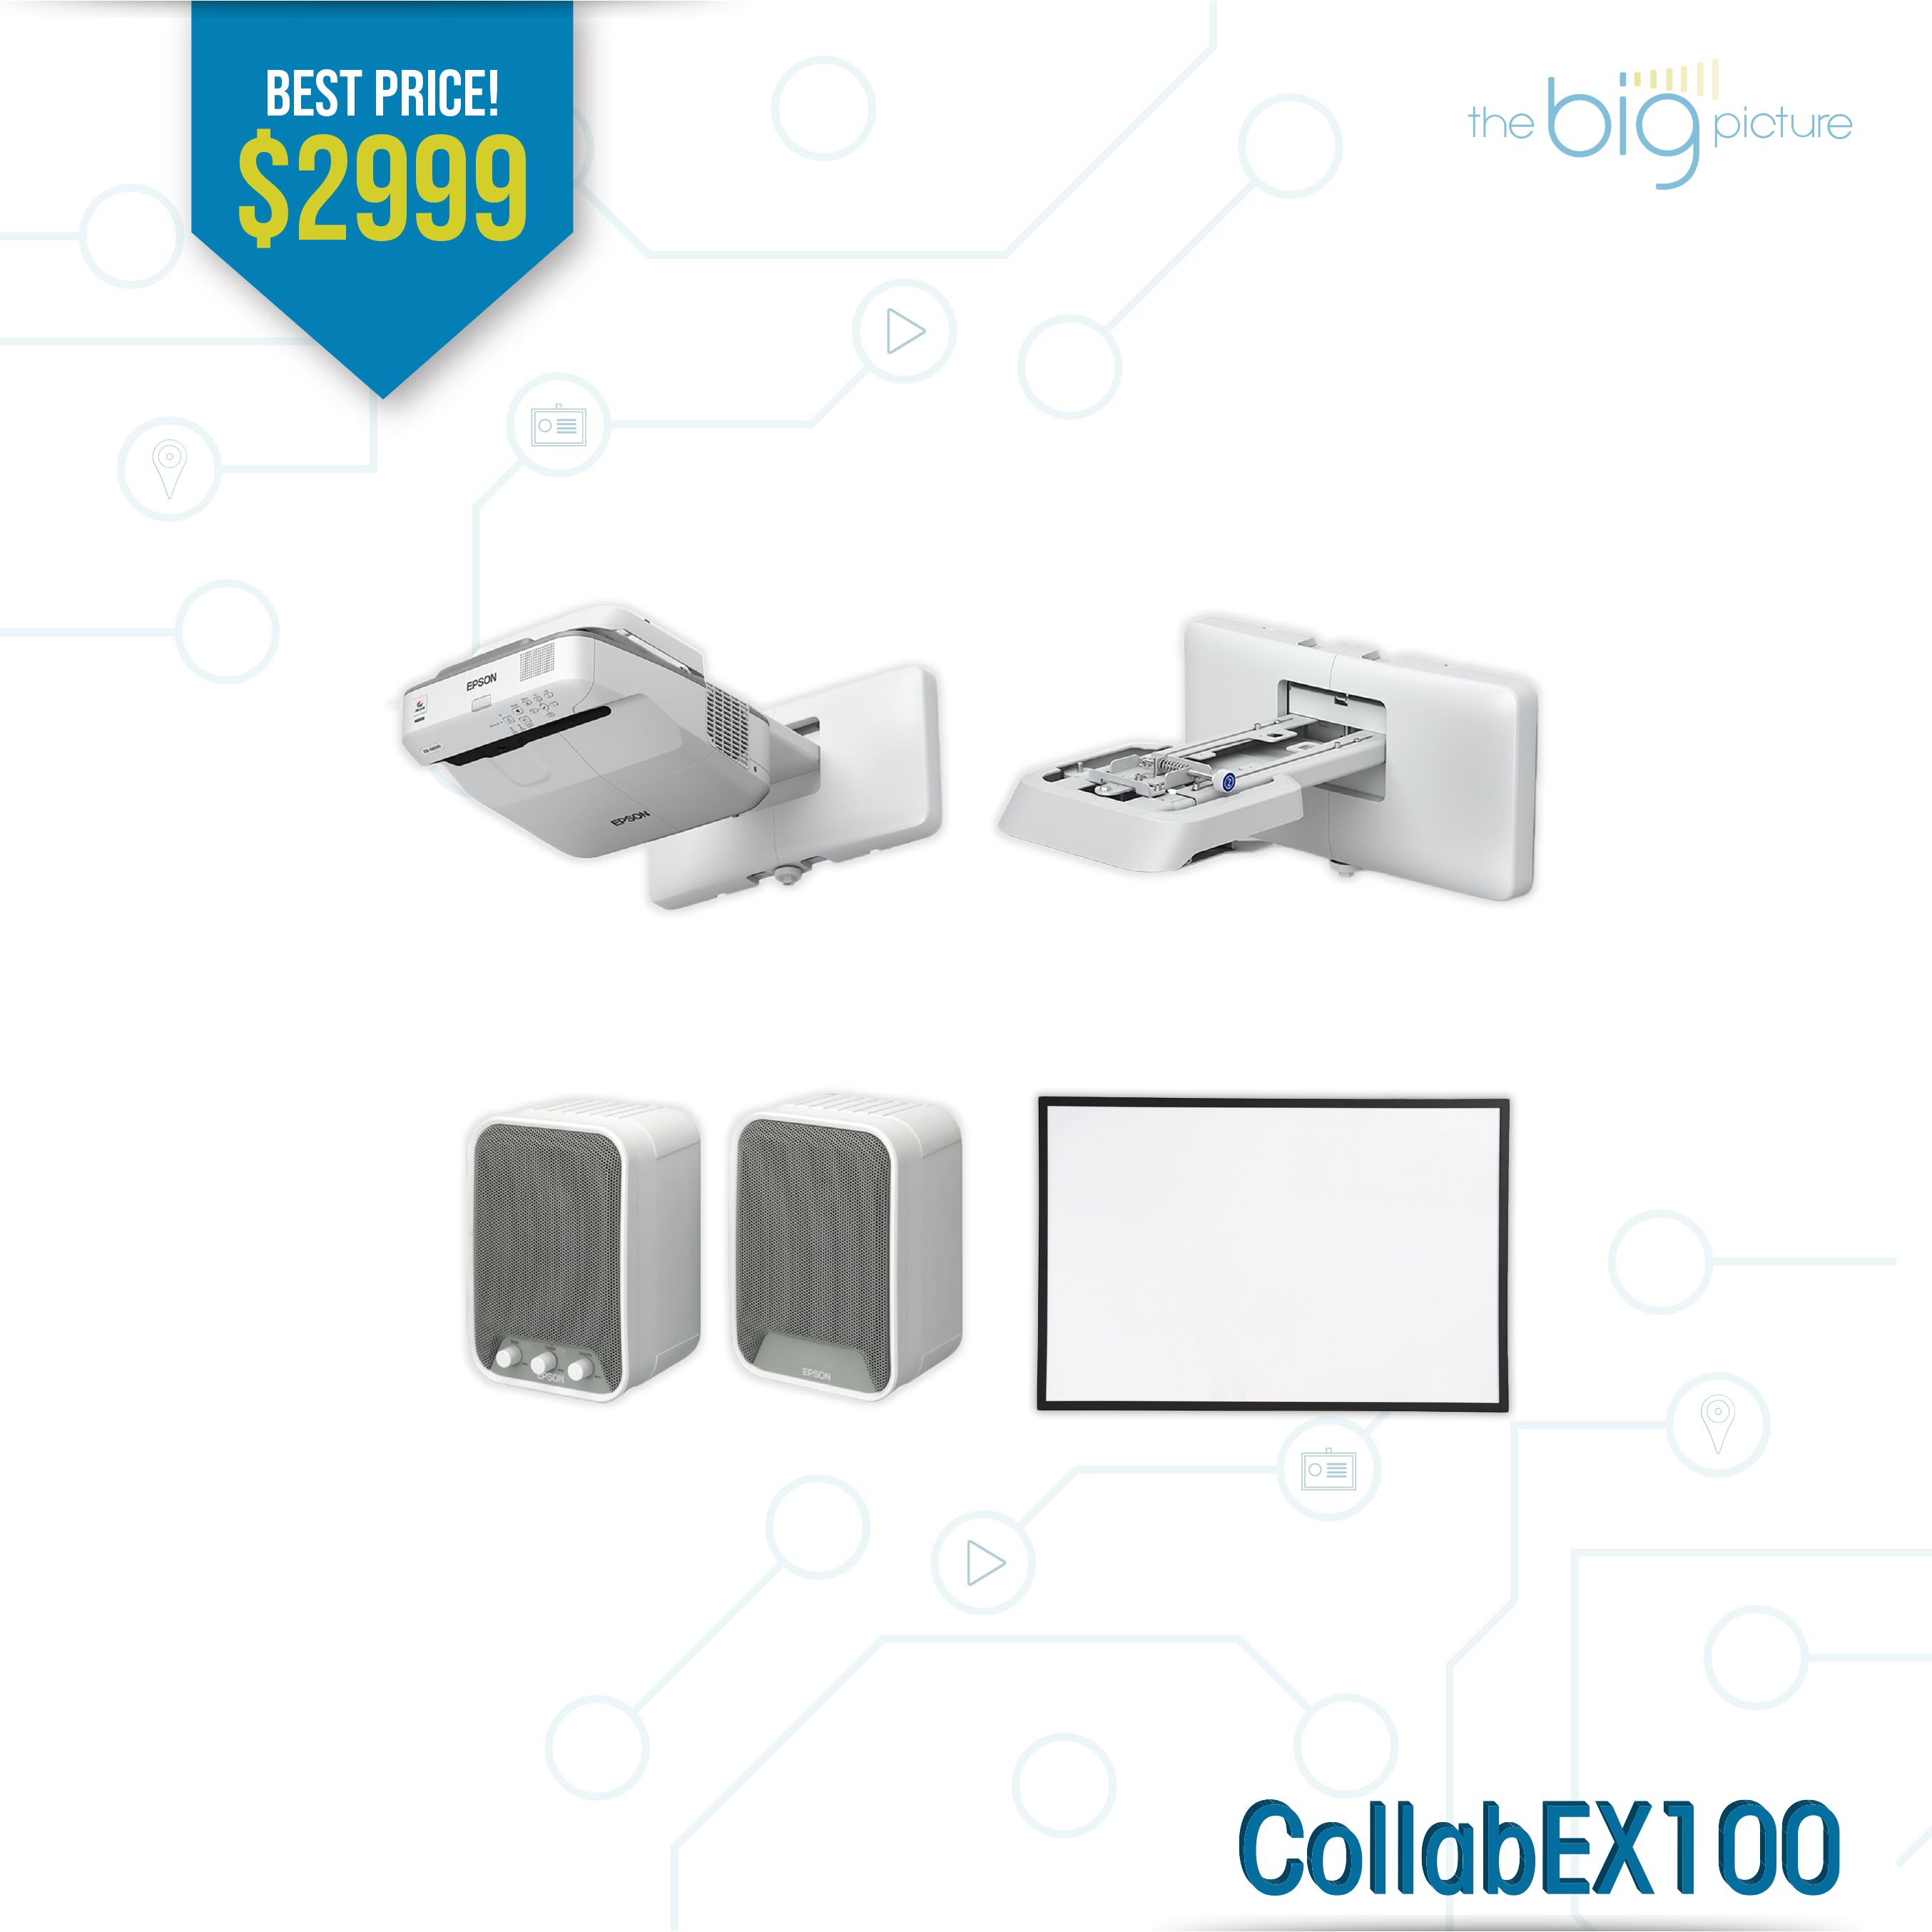 A set of products for CollabEX100